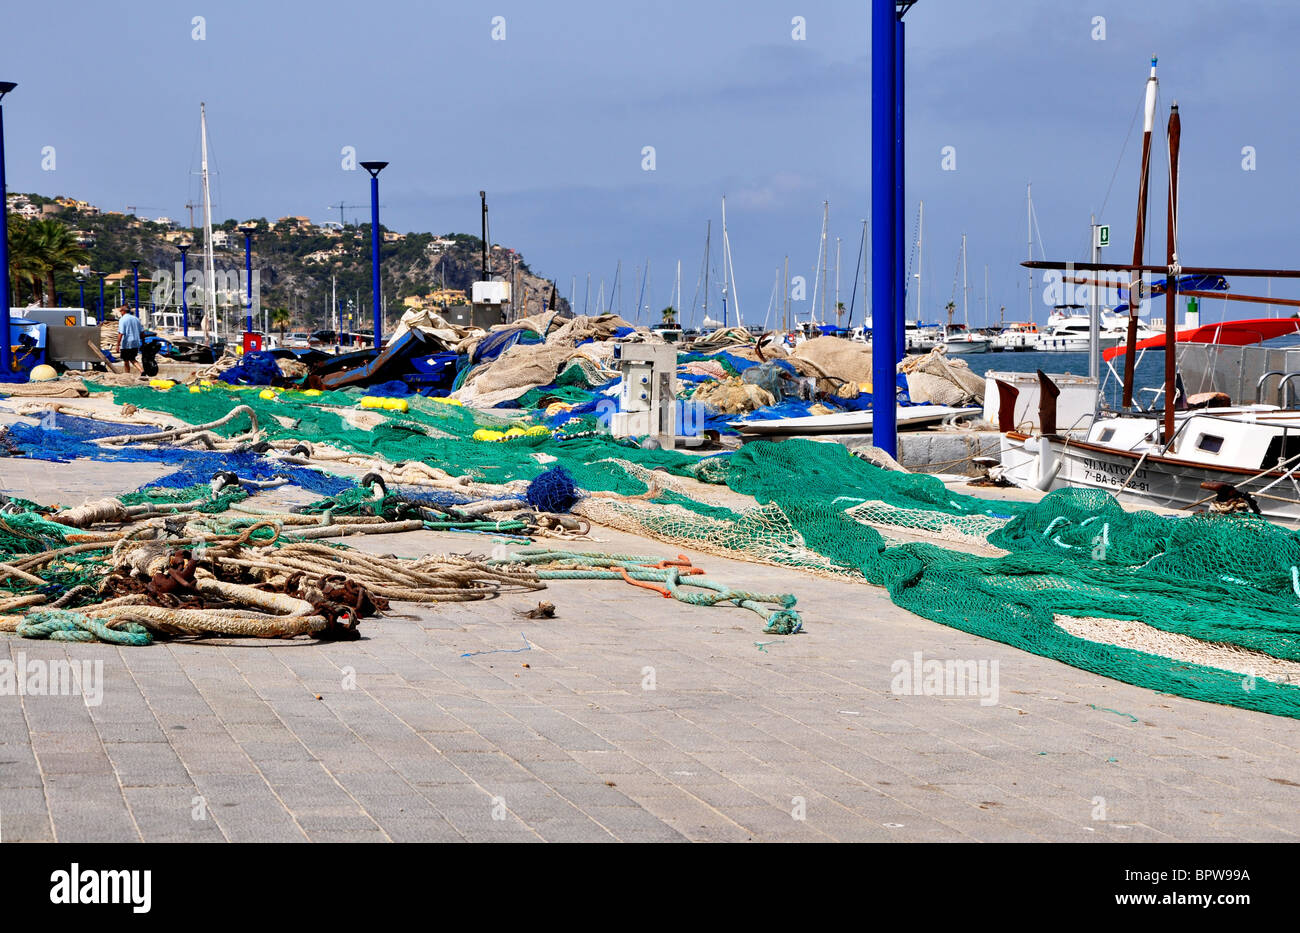 View of the the fishing harbor (port) along the quayside in Puerto Andtatx with colorful fishnet and an anchor - Stock Image